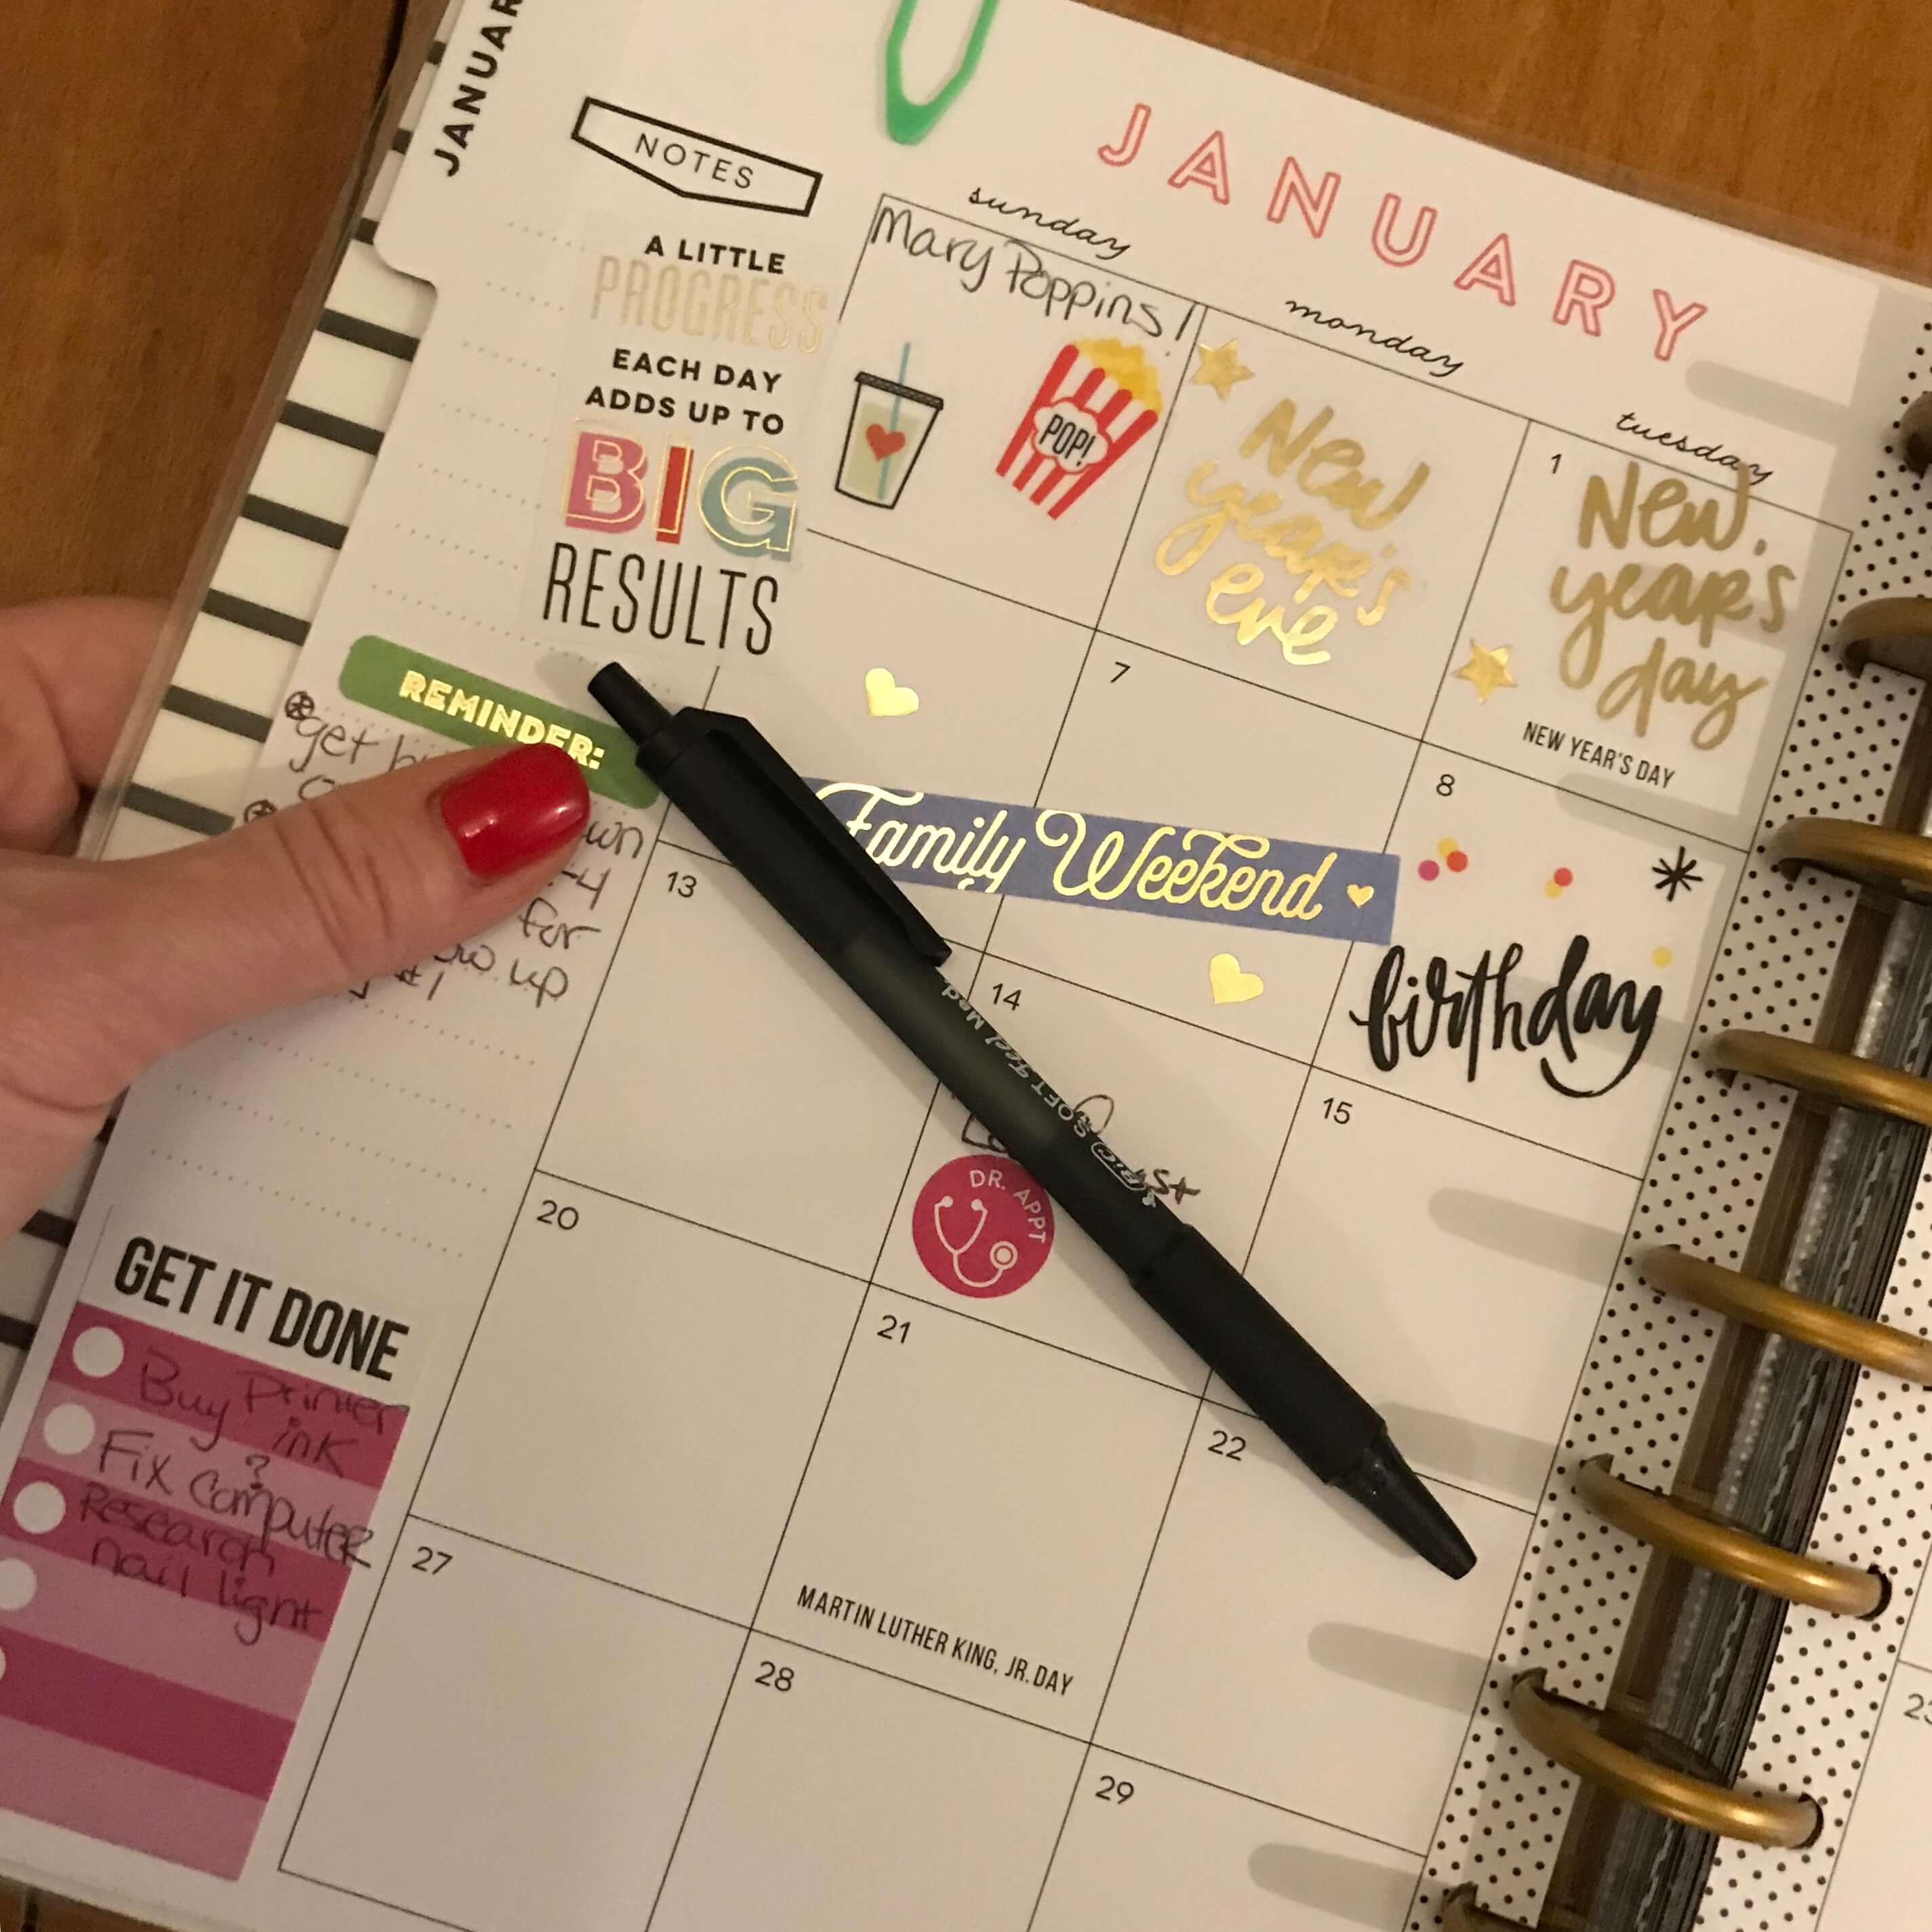 First page of a Happy Planner monthly planning with stickers and important dates filled in